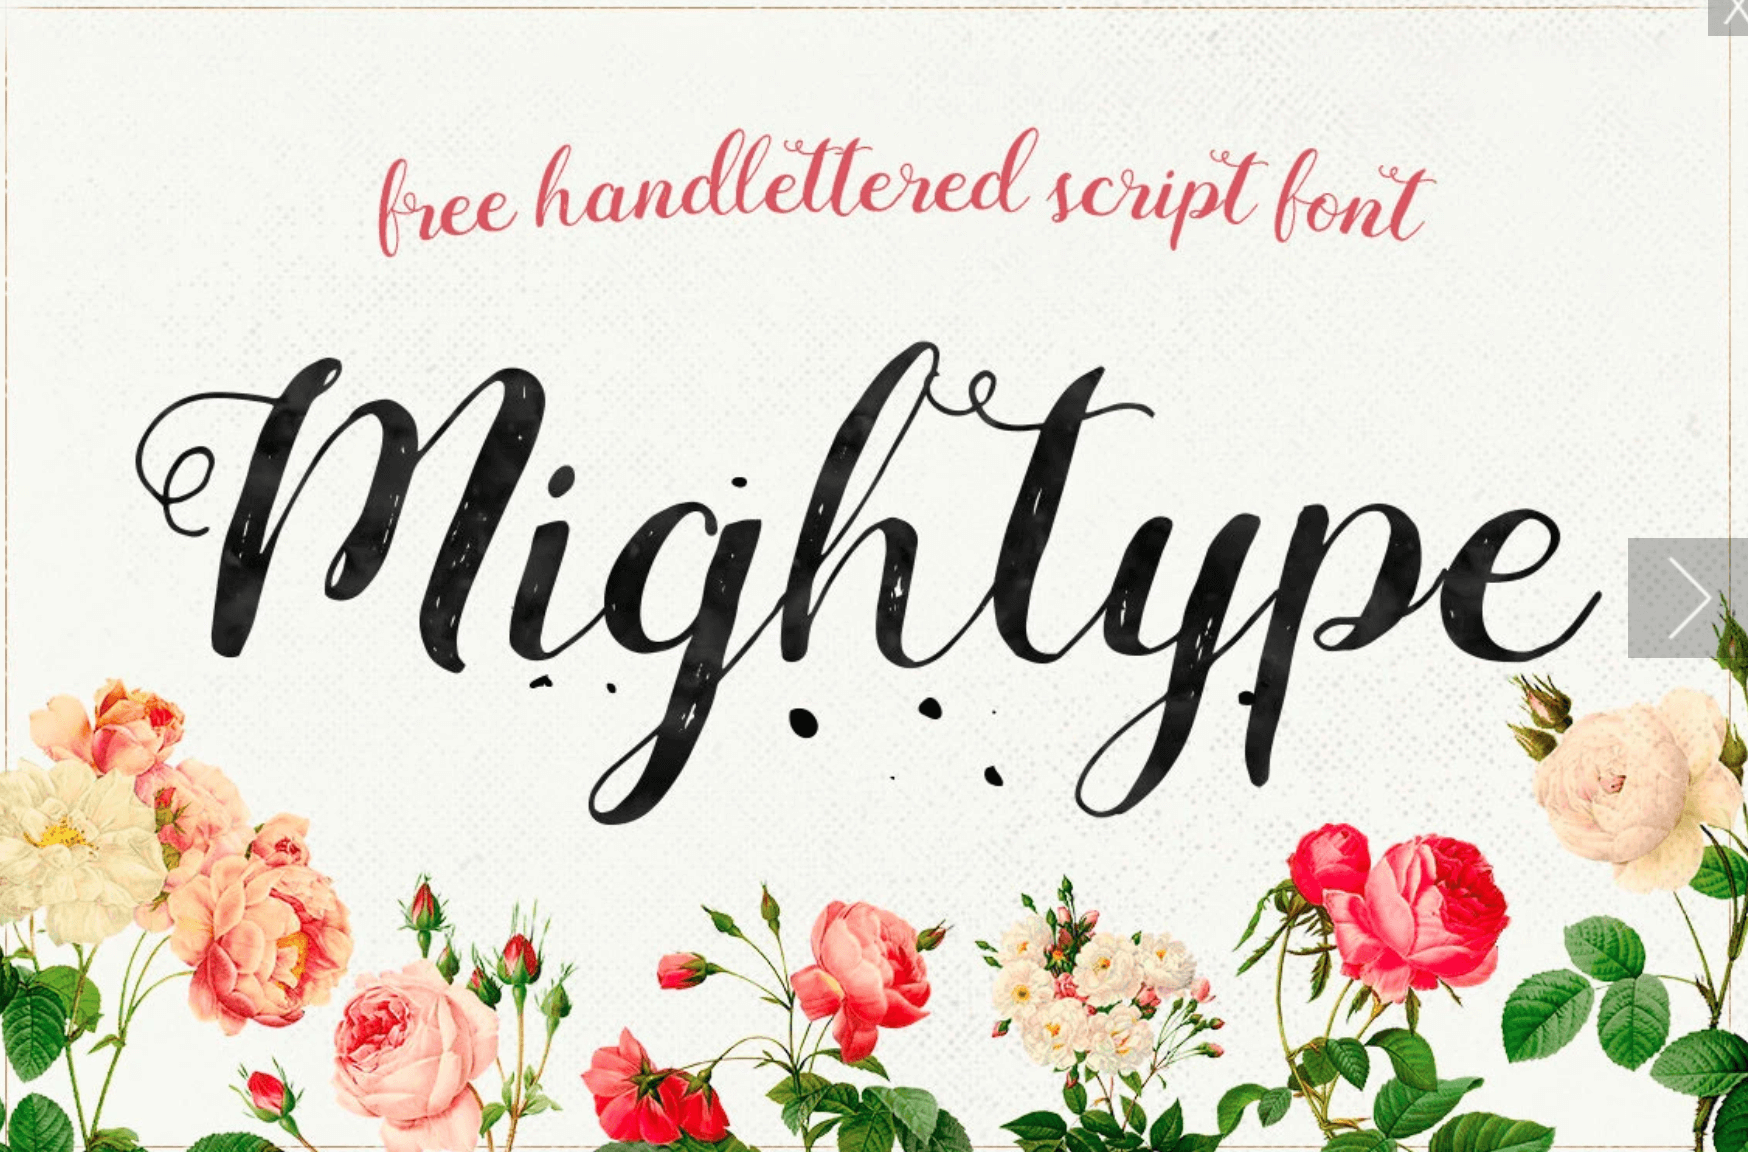 Free font for commercial use. This typeface is Mightype